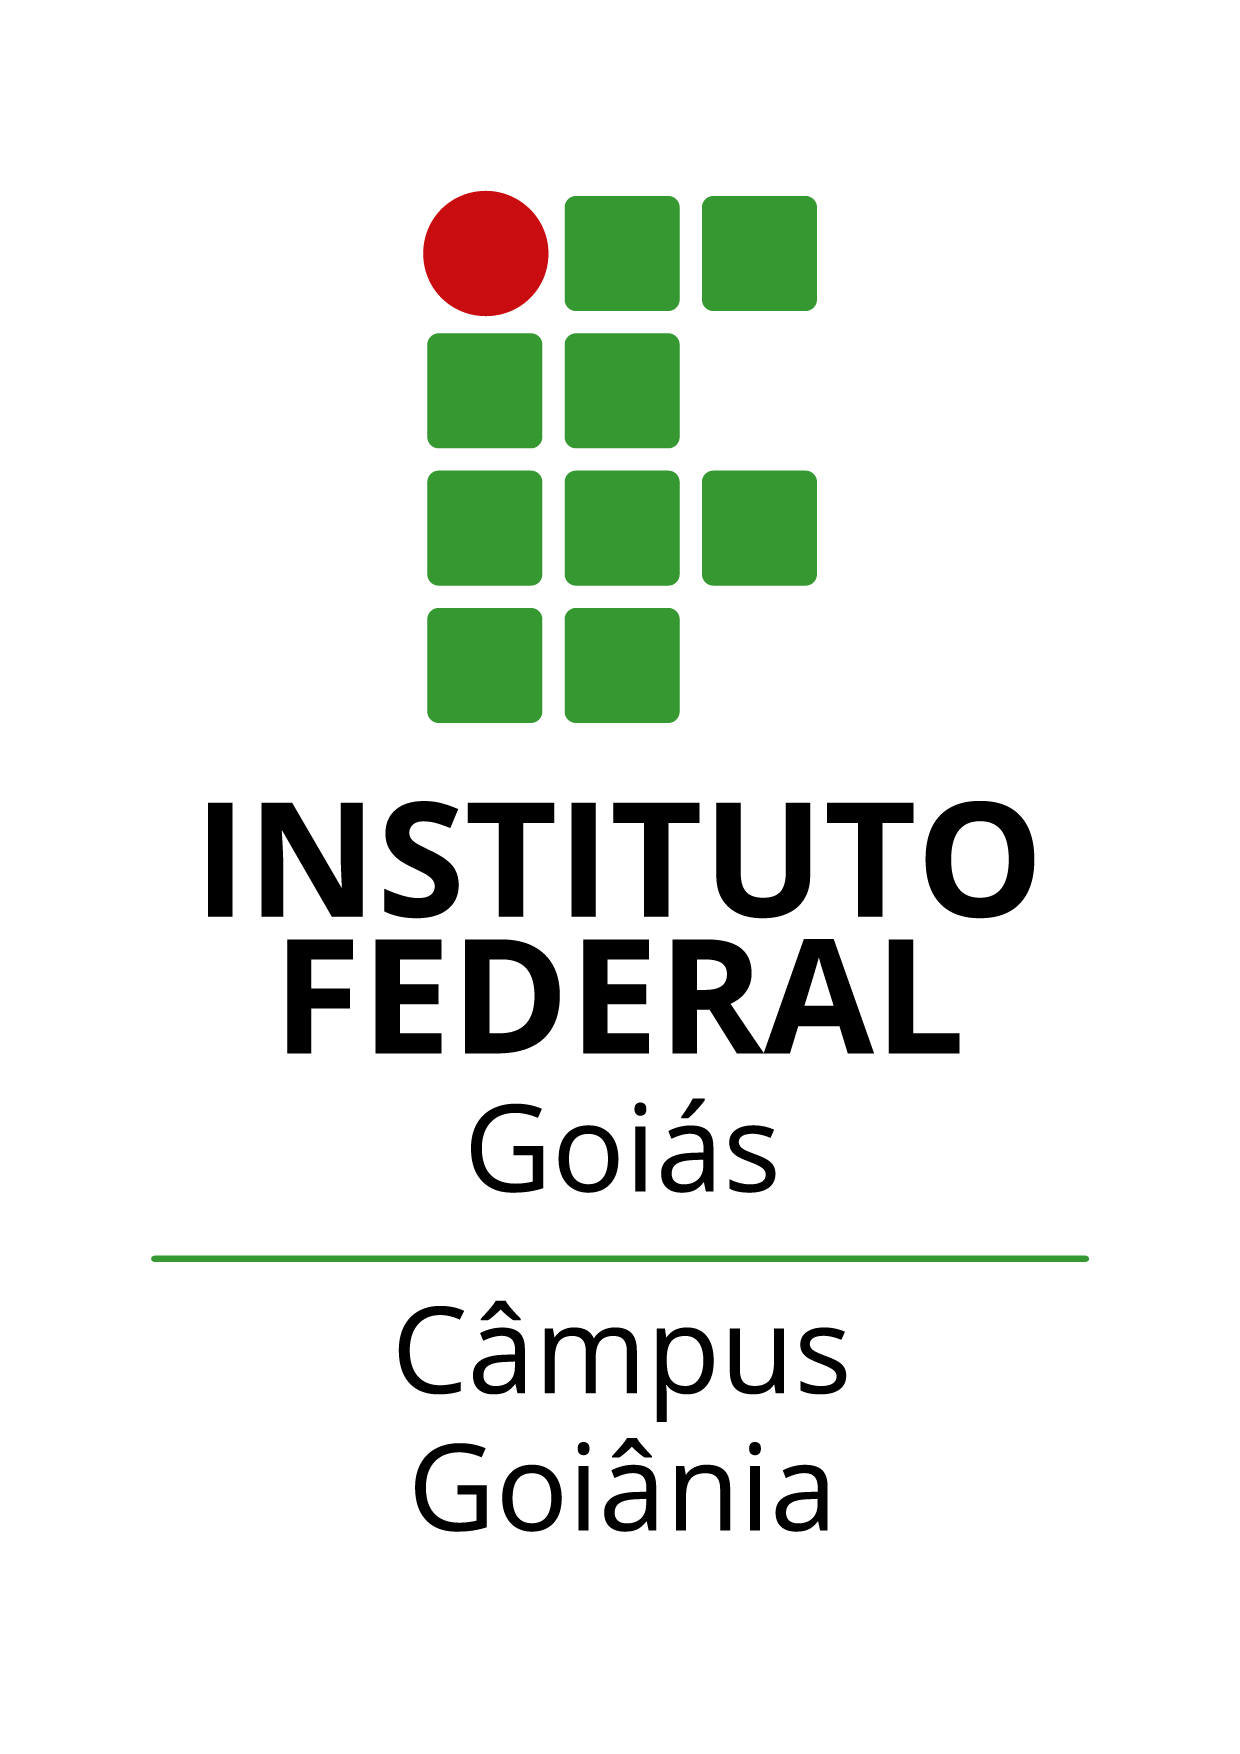 Logo do IFG - Câmpus Goiânia